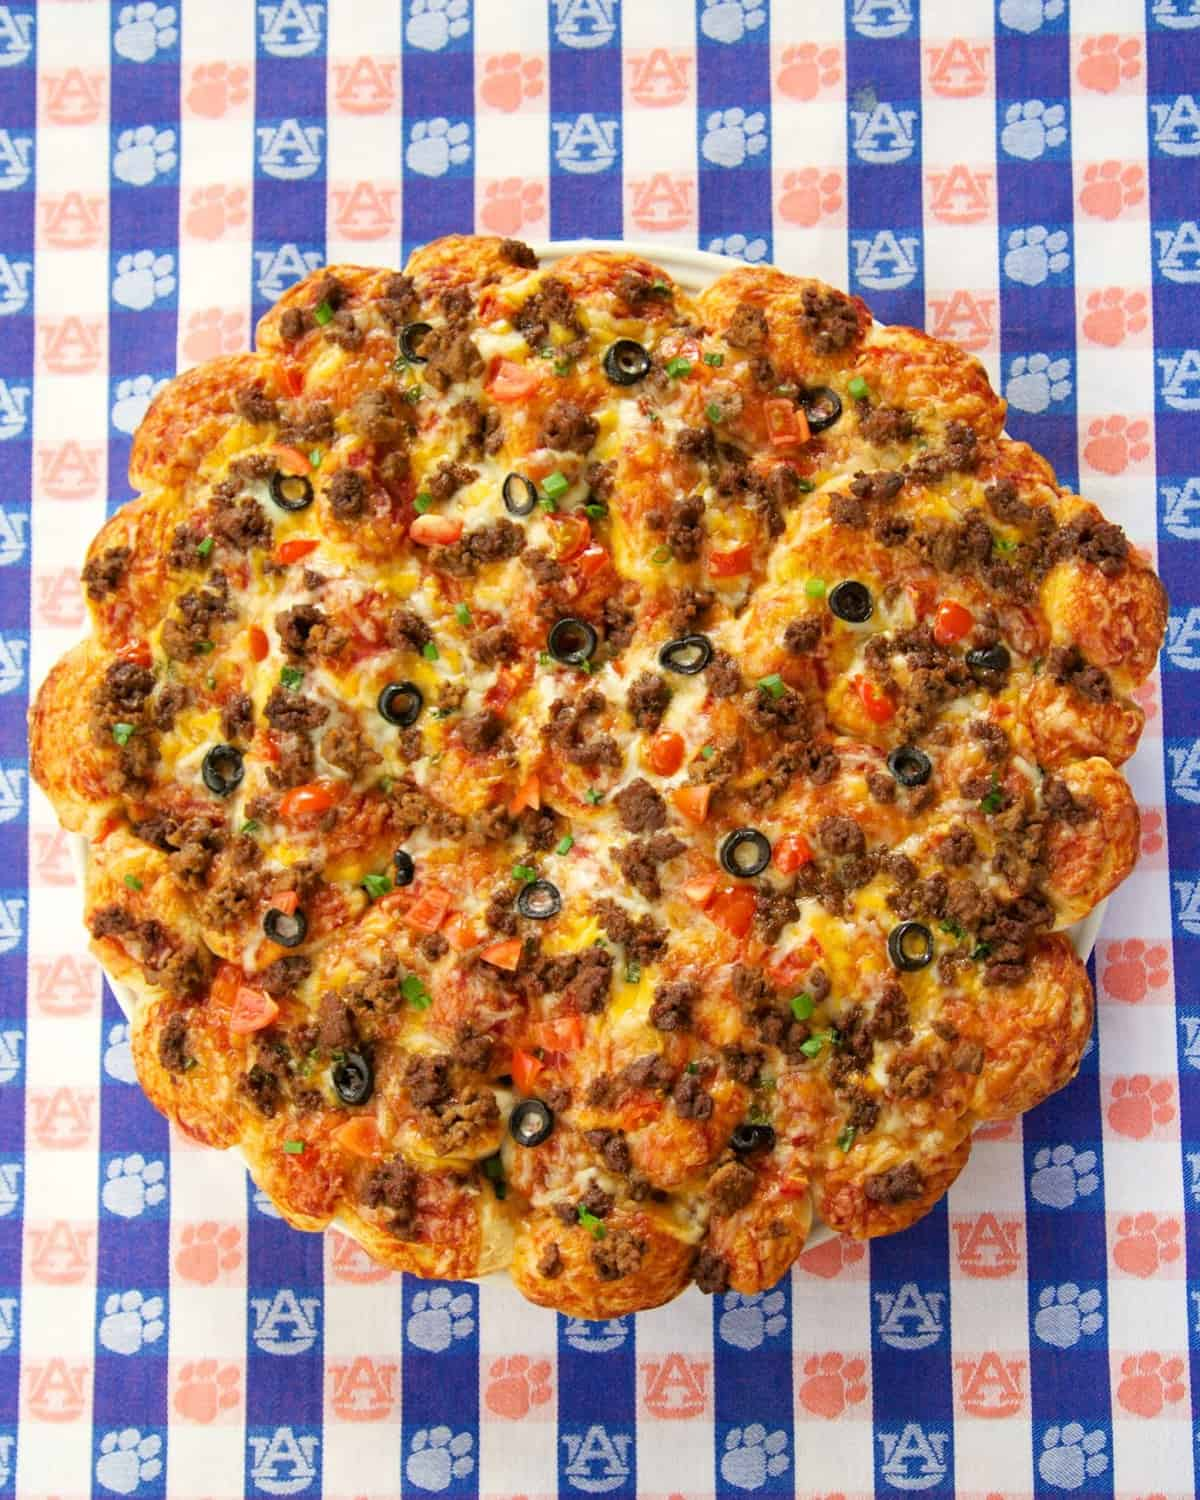 Mexican Pull Apart Pizza - refrigerated bread dough, topped with taco sauce, taco meat, cheese, olives, tomatoes and green onions. Great for a party or quick lunch or dinner. Kids (and adults) go nuts over this pizza!